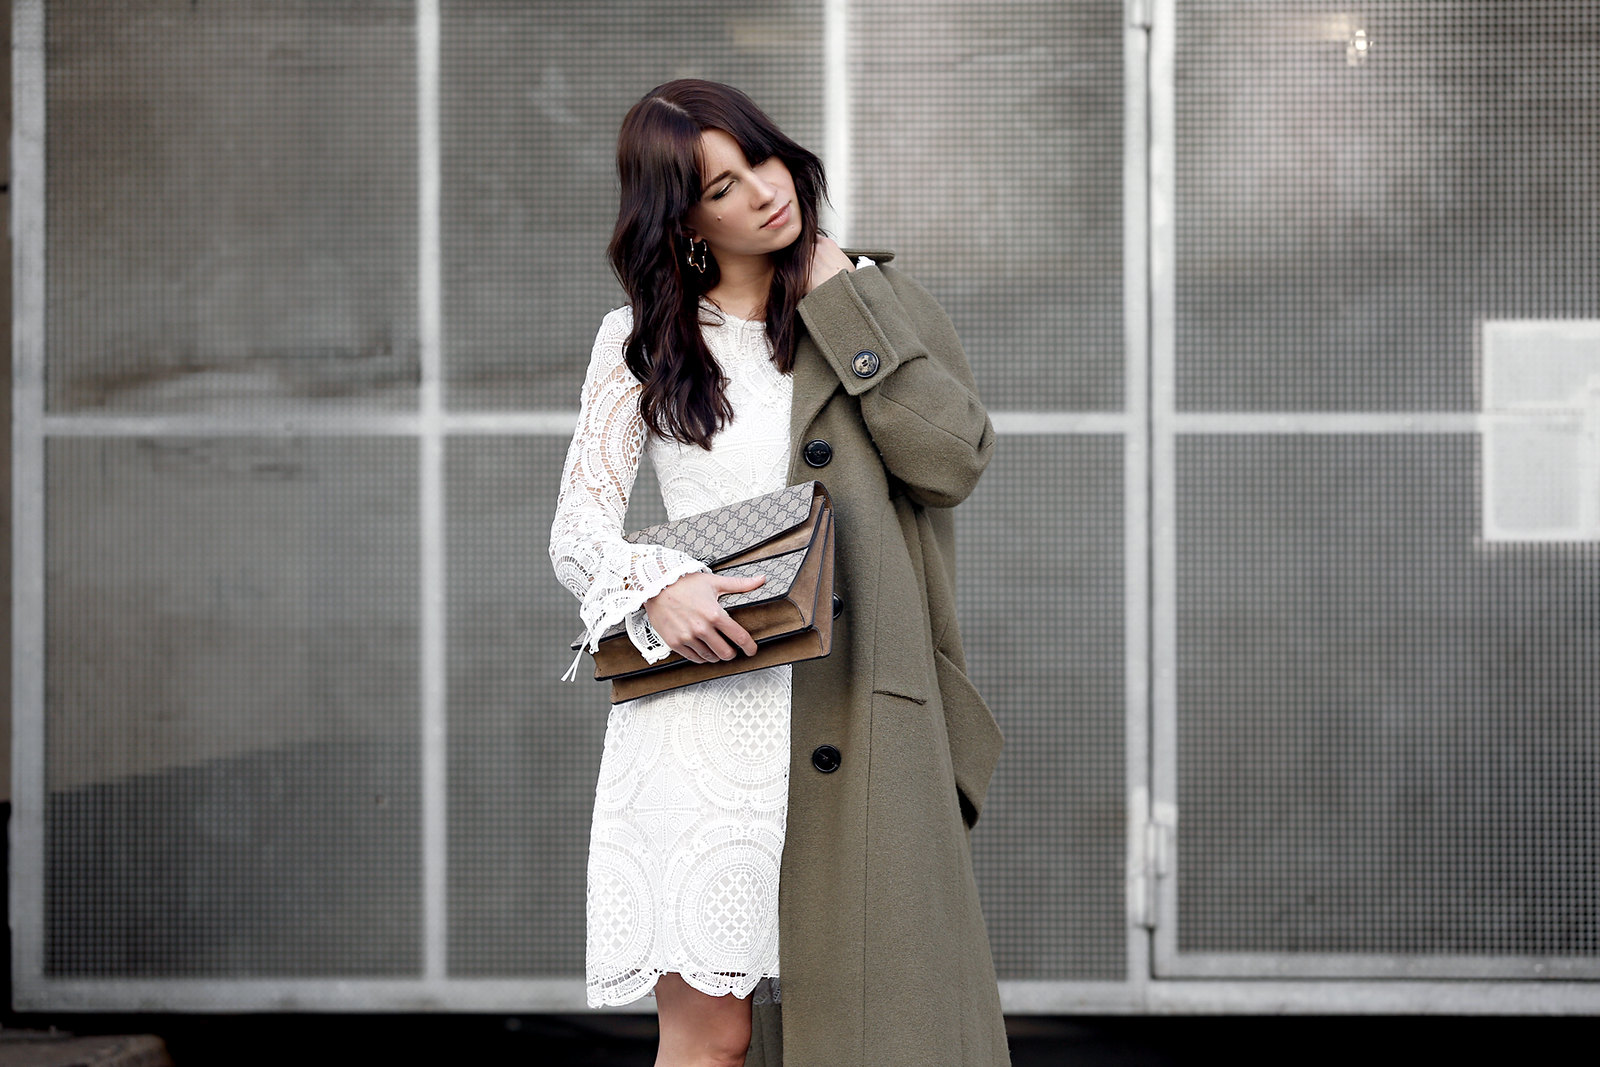 about you coat khaki wool white lace dress vila sneakers sacha gucci dionysus bag mvmt watch gold ootd styling lookbook cats & dogs modeblog ricarda schernus fashionblogger berlin düsseldorf 7